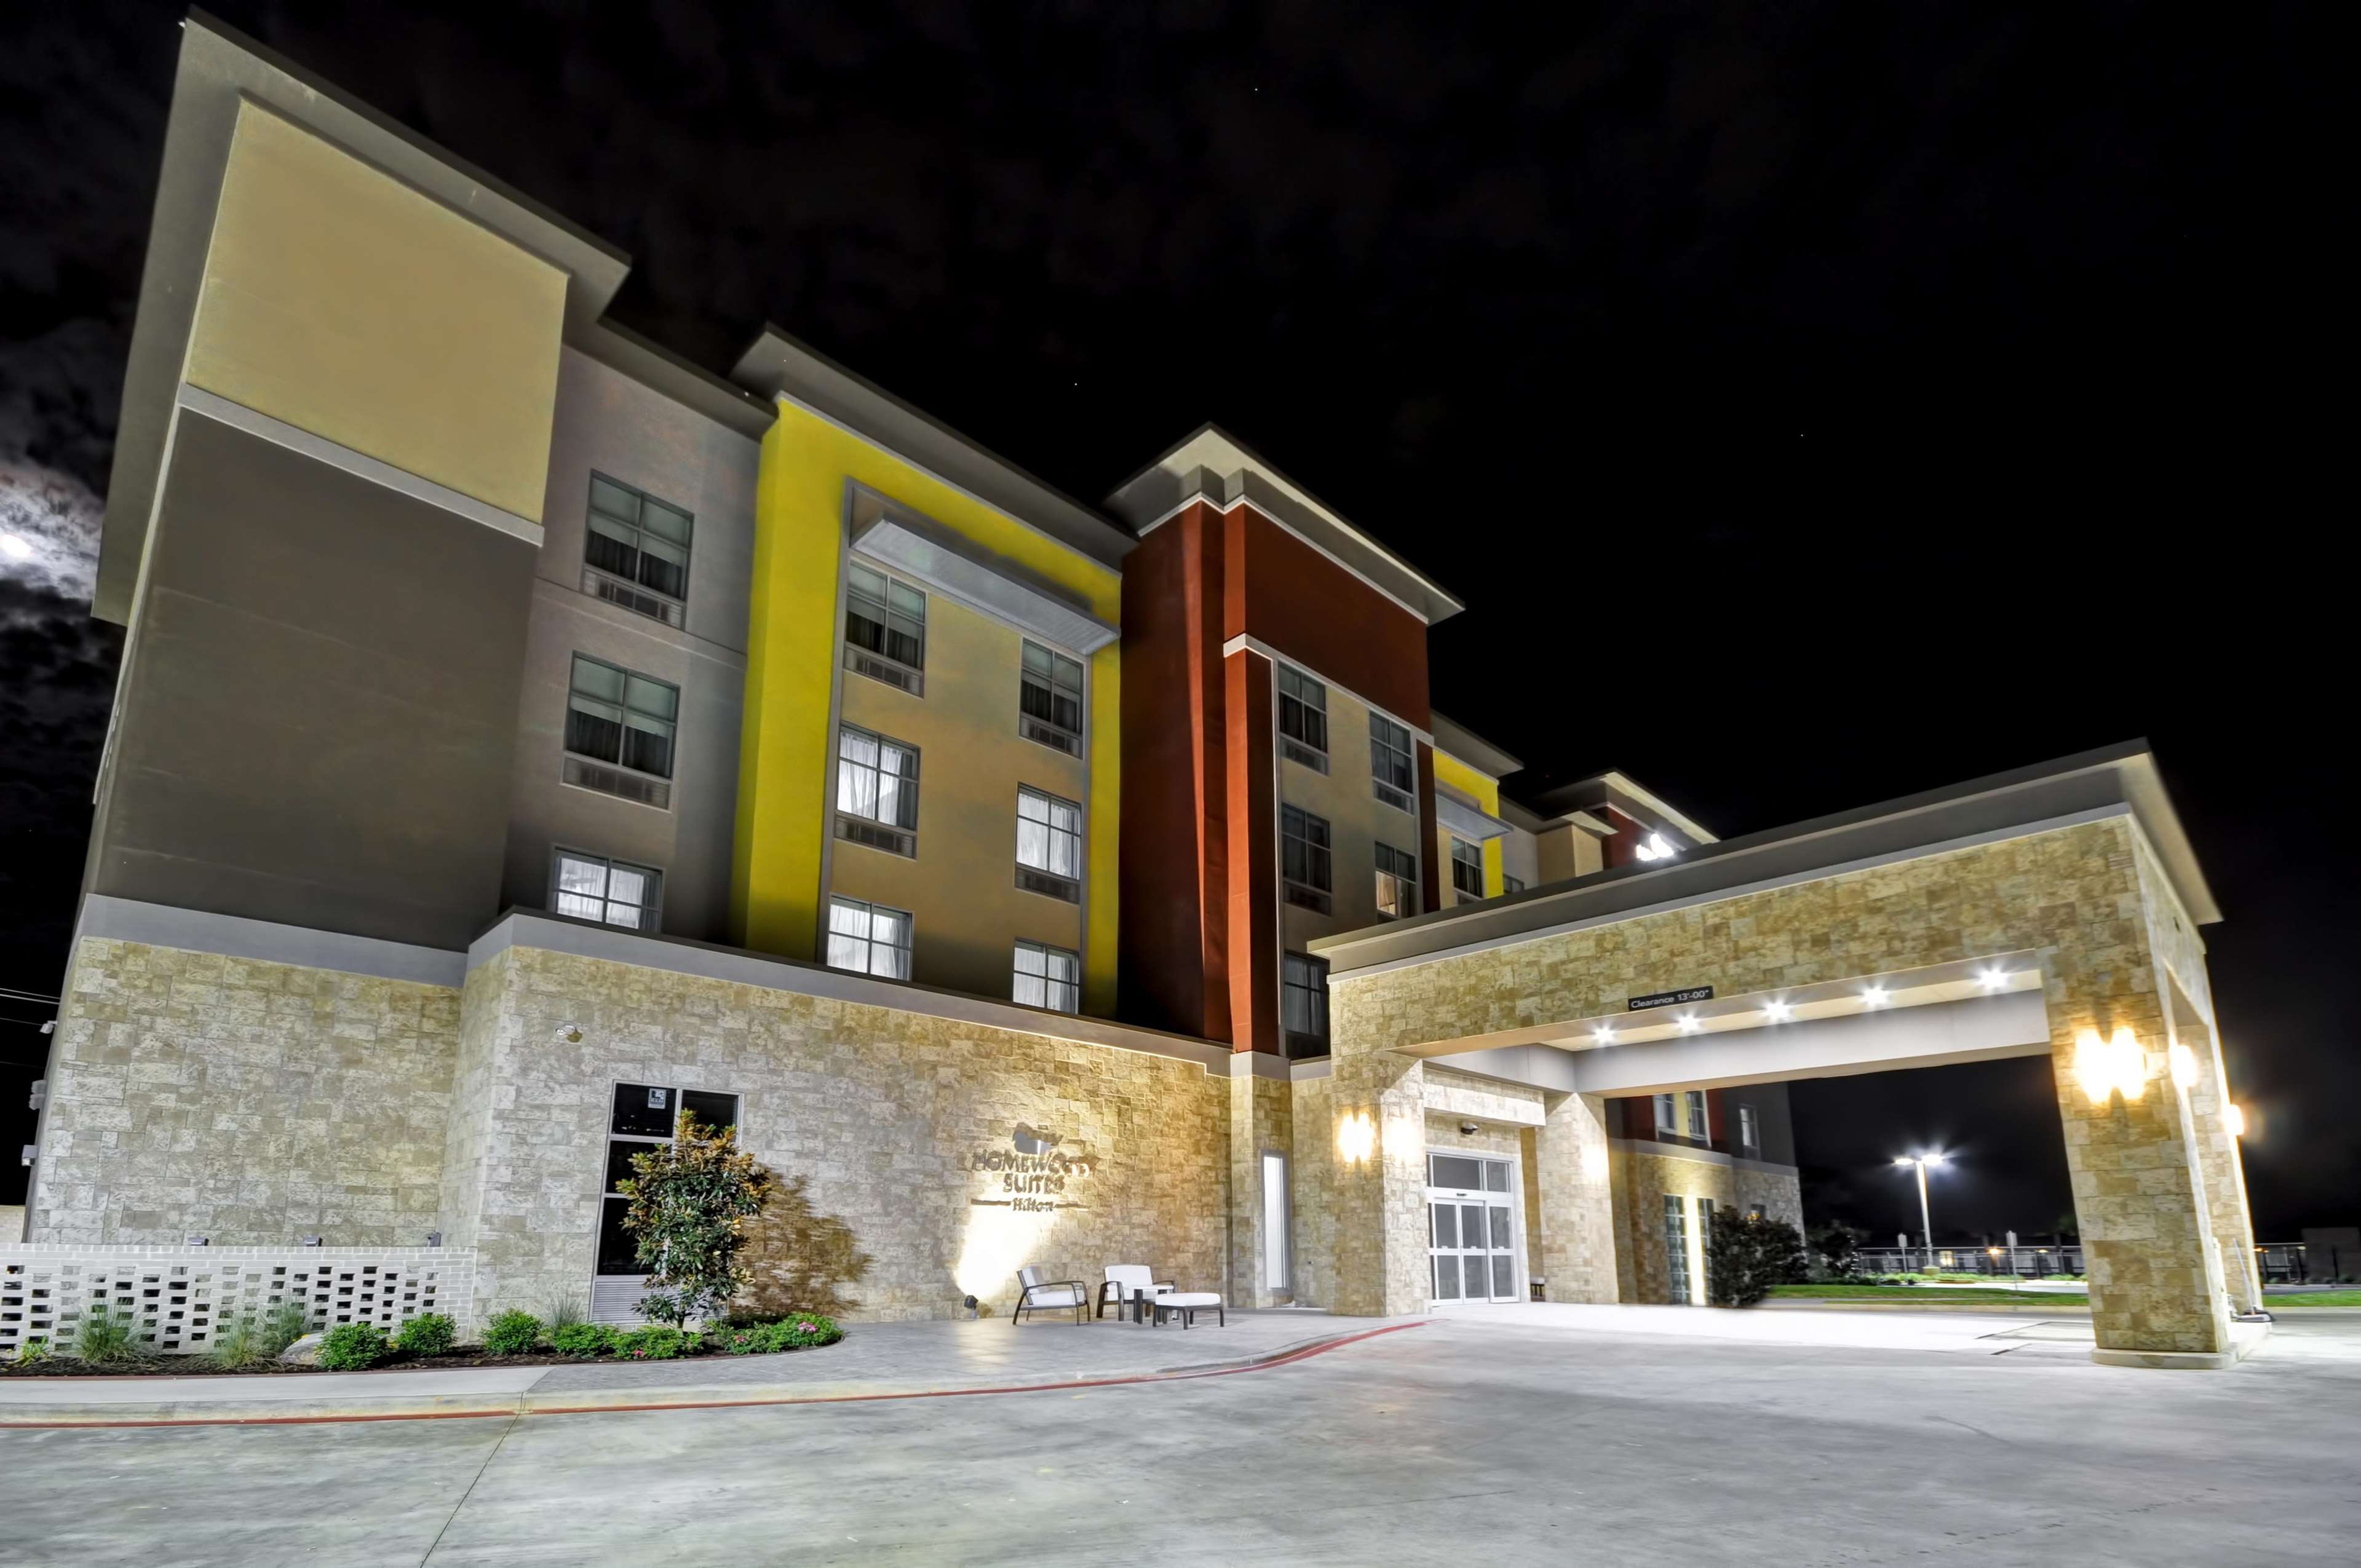 Homewood Suites by Hilton Tyler image 23